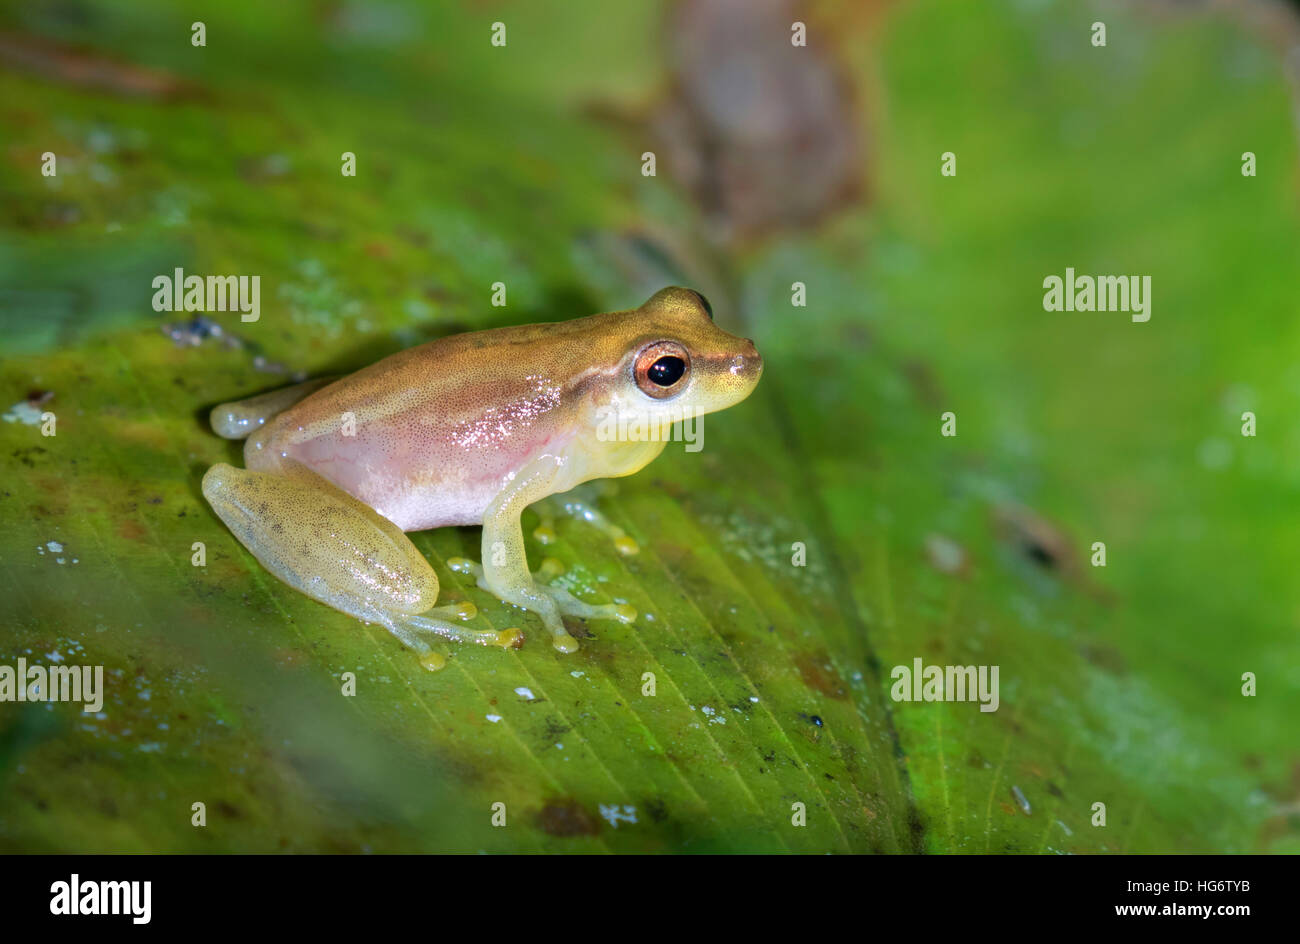 Yellow cricket tree frog (Dendropsophus microcephalus) on a leaf in swampy rainforest, Belize, Central America - Stock Image